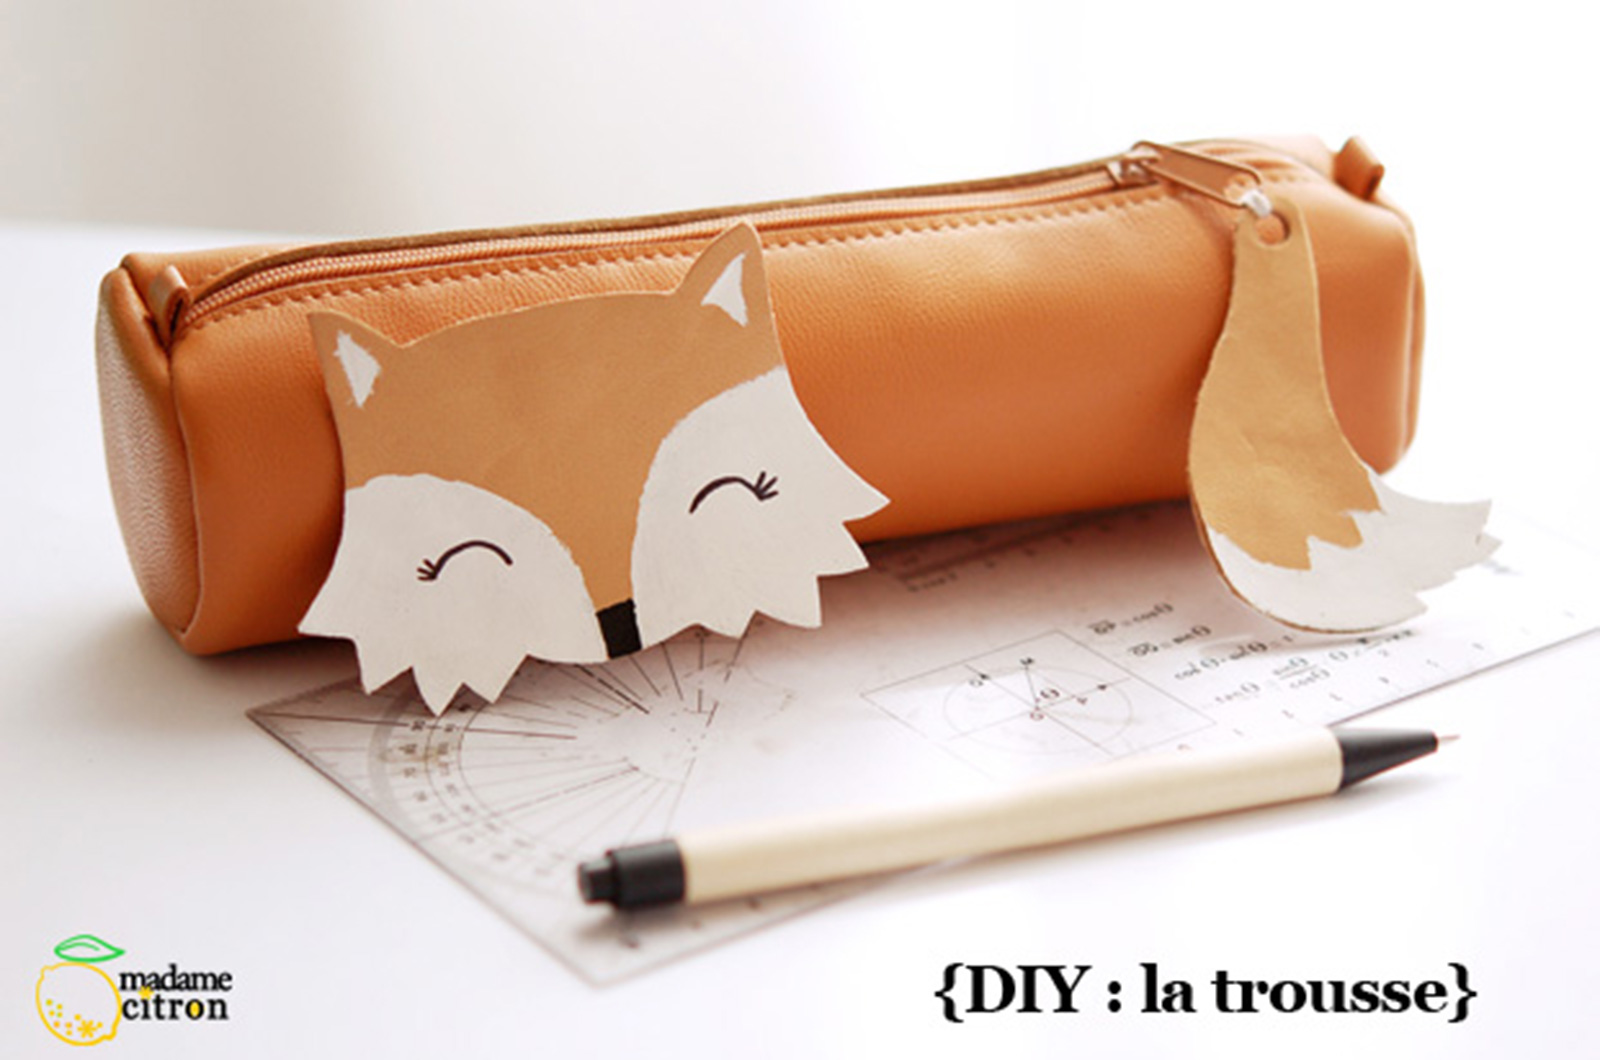 diy-trousse-renard